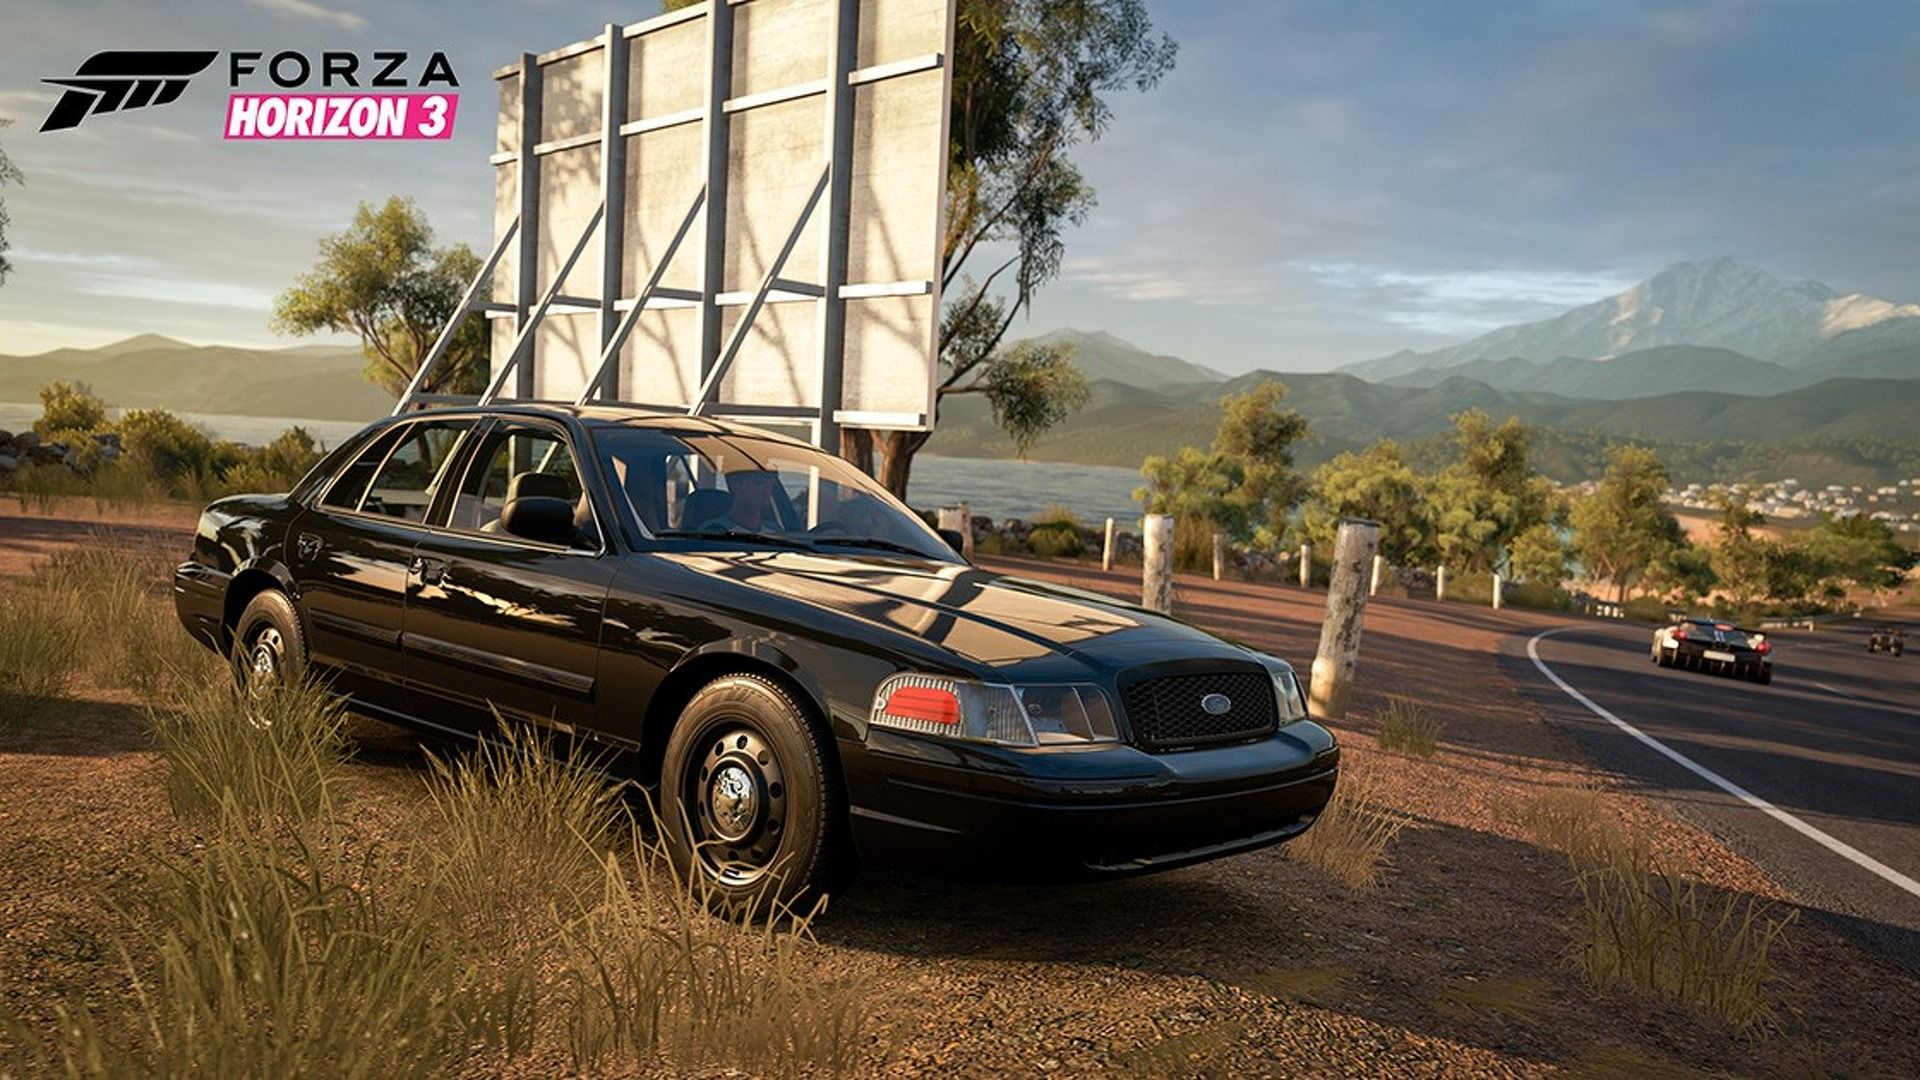 Now you can drive a Ford Crown Vic cop car in Forza Horizon